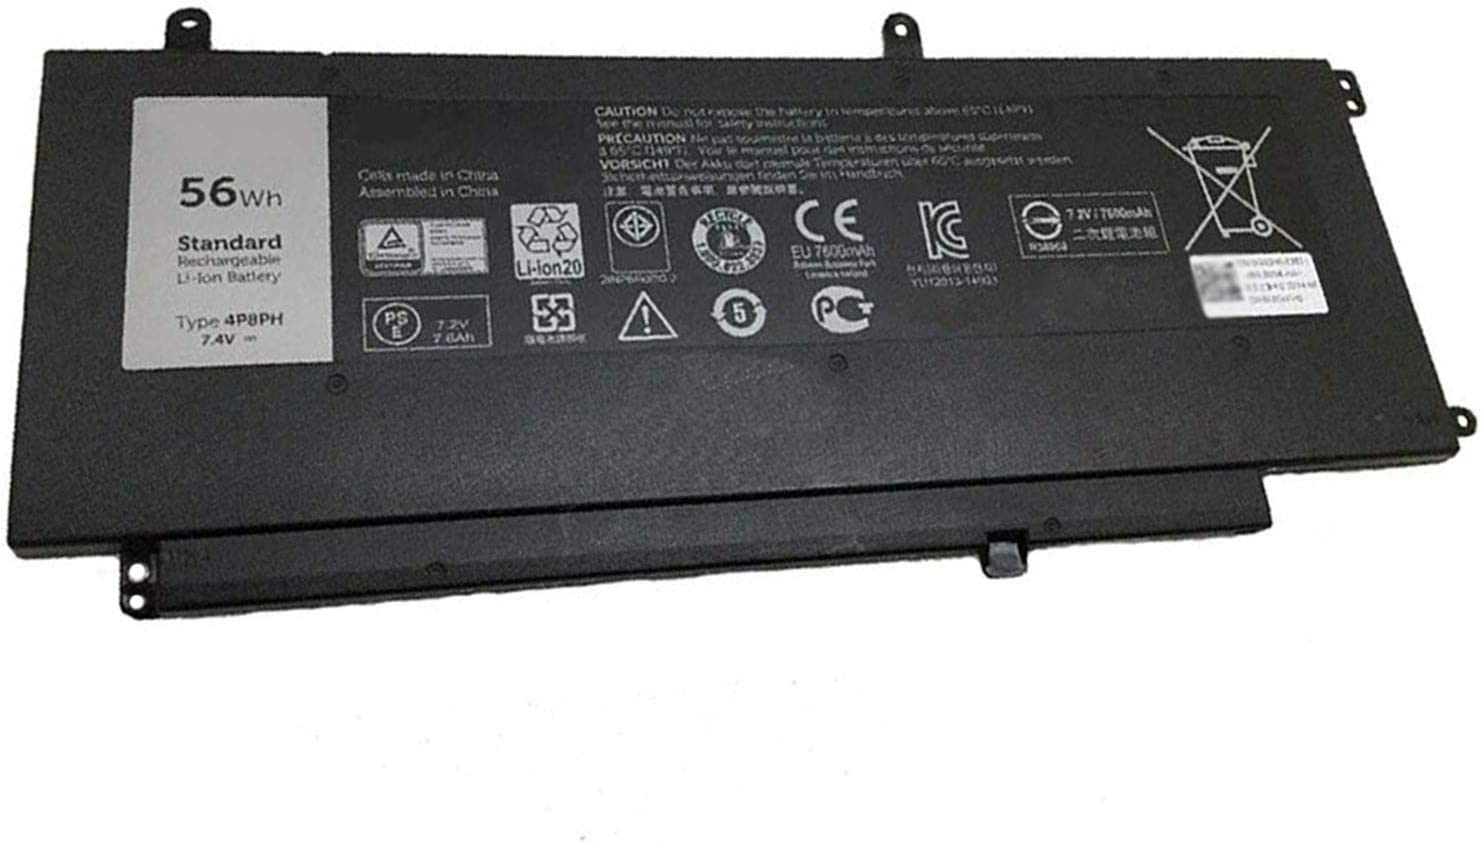 Dentsing 7.4V 56Wh/7410mAh 4P8PH Laptop Battery Compatible with Dell Inspiron 15 7000 7537 7547 7548 NSPIRON 5000 N7547 N7548Series Notebook G05H0 0G05H0 OPXR51 D2VF9